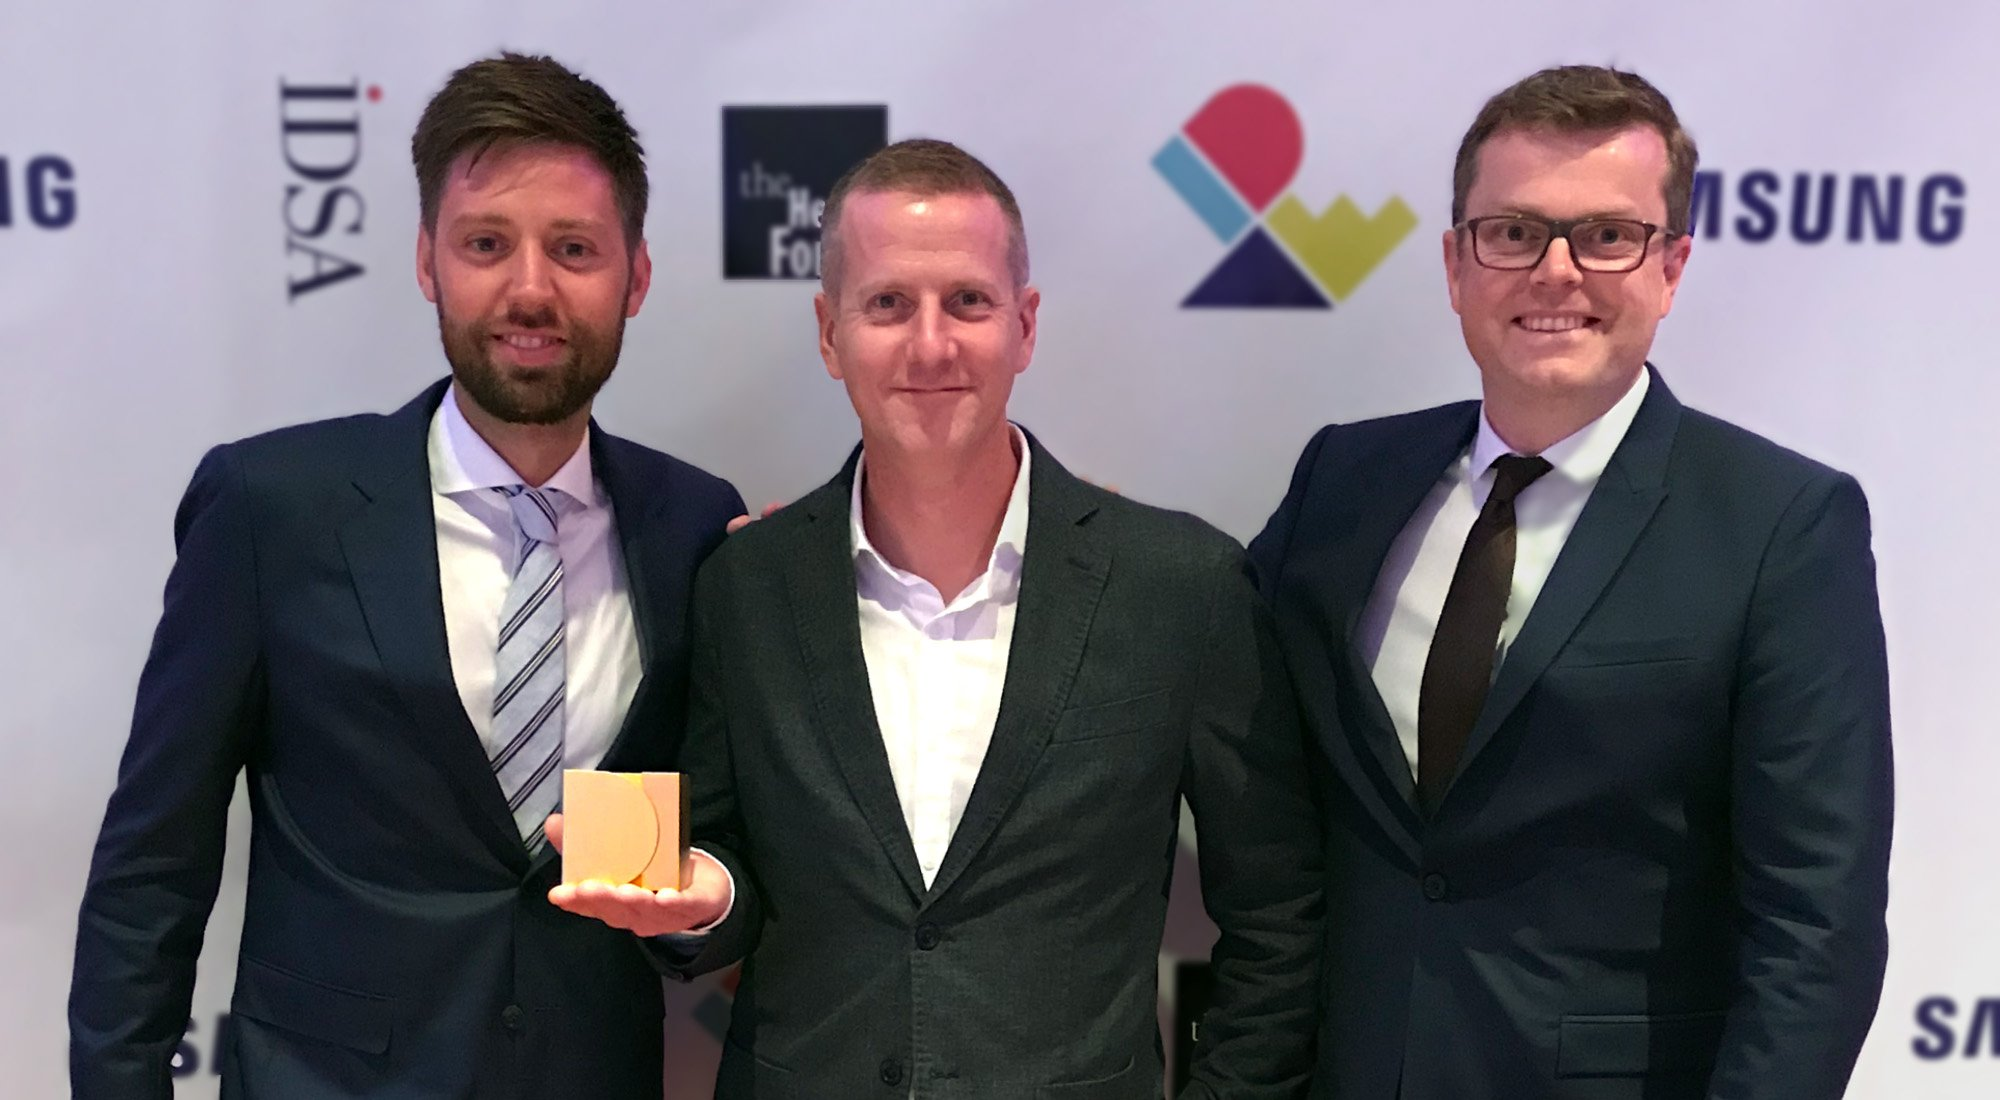 MX Vertical wins IDEA Gold